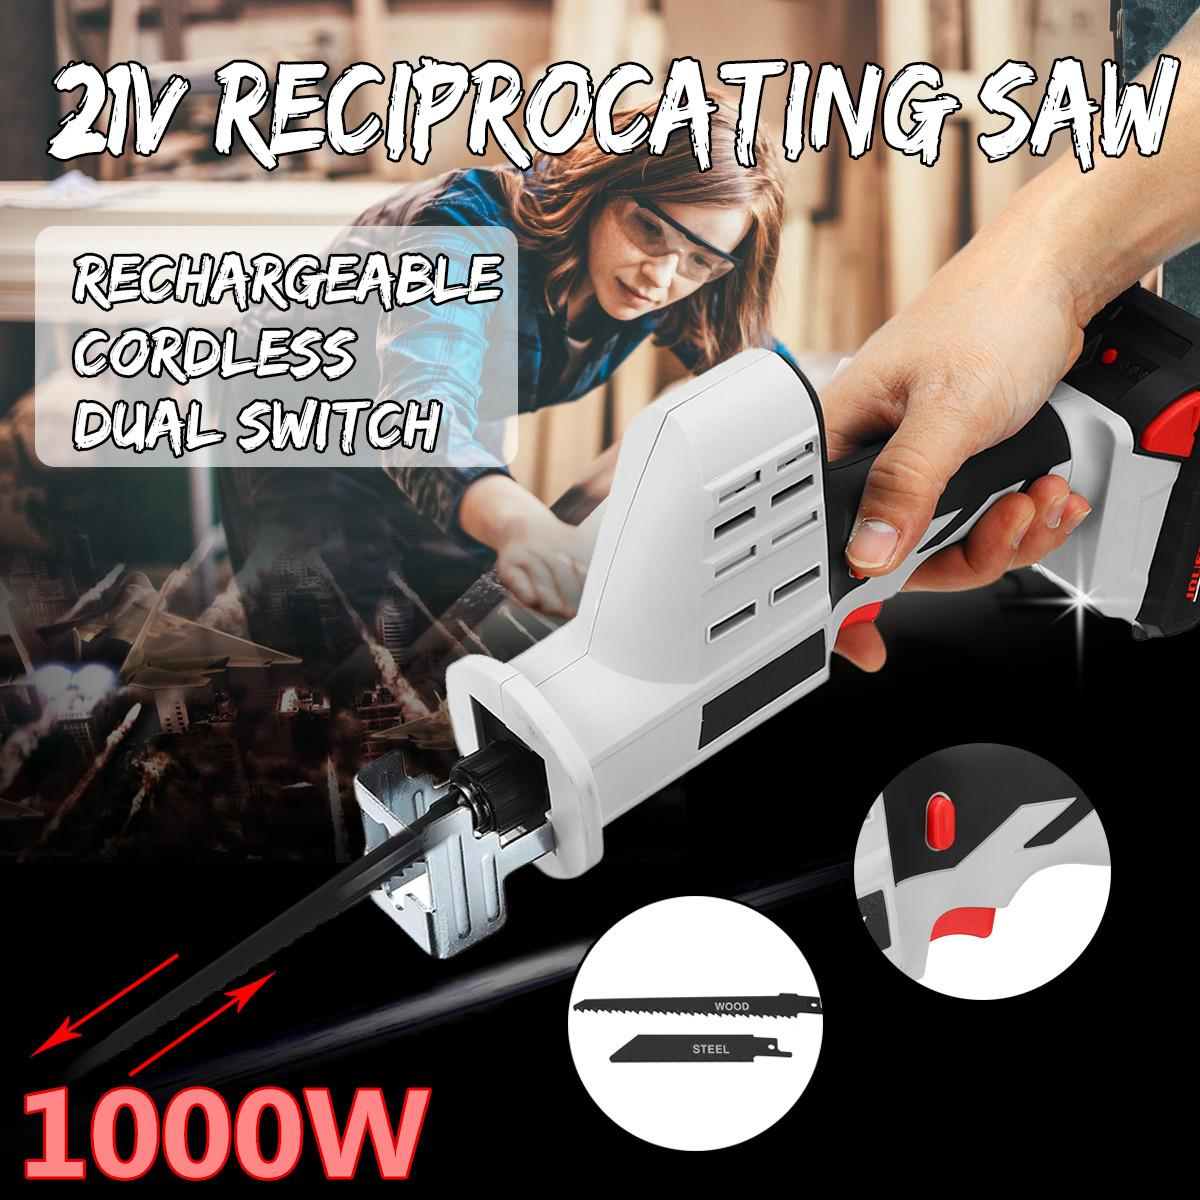 21V 1000W Electric Reciprocating Saw with Saw Blades Portable Charging Cordless Chainsaw for Wood DIY Electric Power Tools